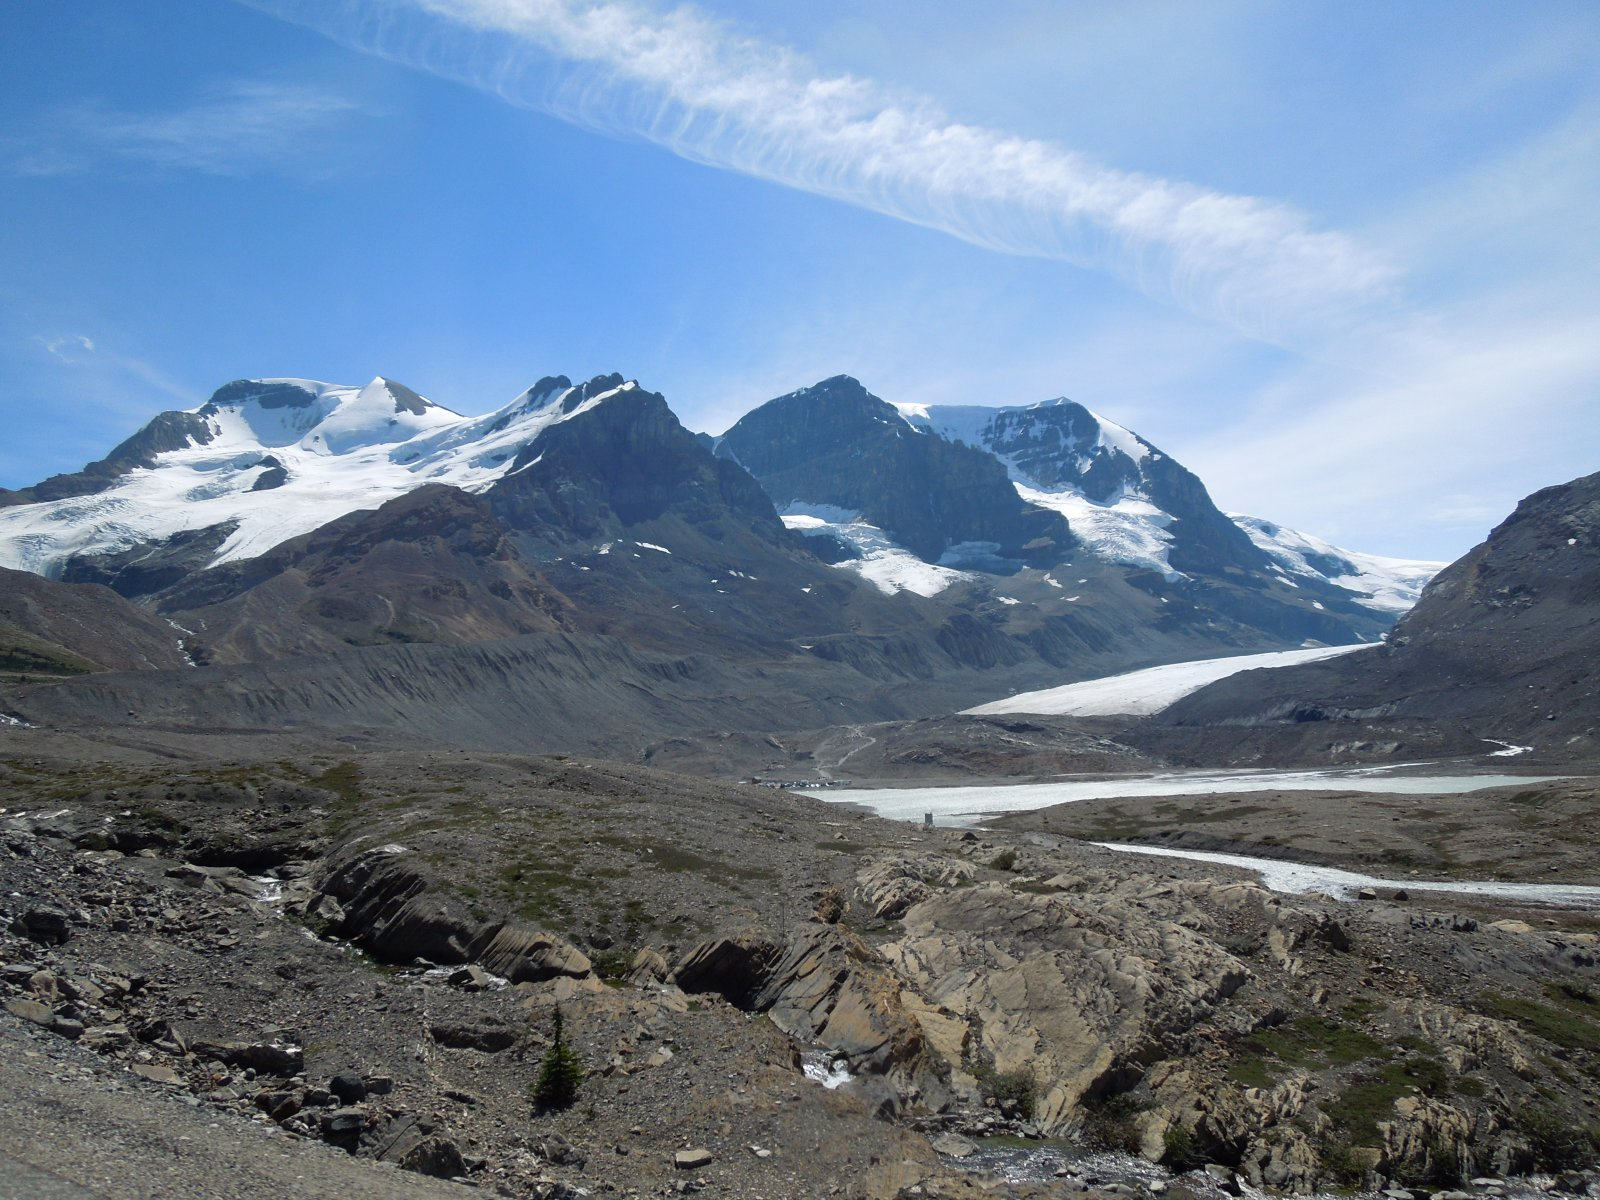 Click image for larger version  Name:Dawson Creek to Icefield Parkway to Cochrane 279.jpg Views:42 Size:376.2 KB ID:222523